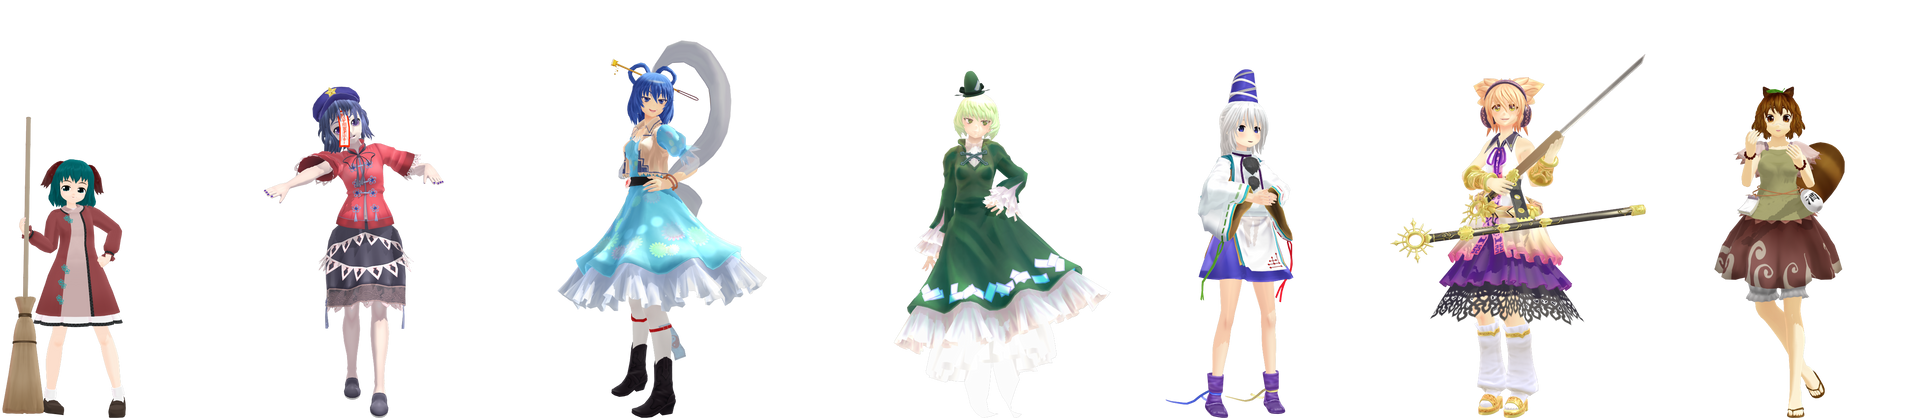 [MMD] TD Crew by Totalheartsboy